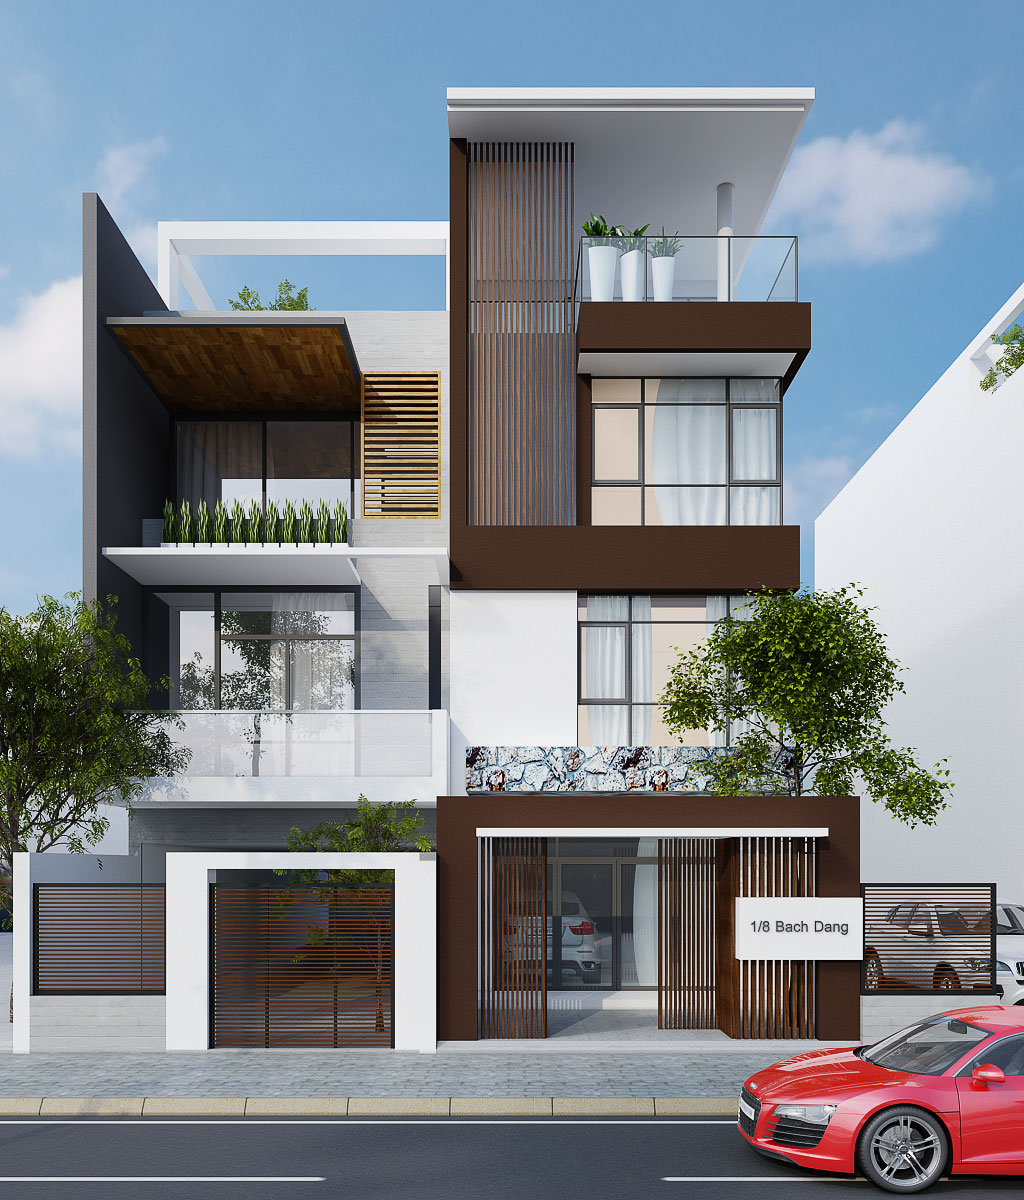 Town house in Tan Phu district